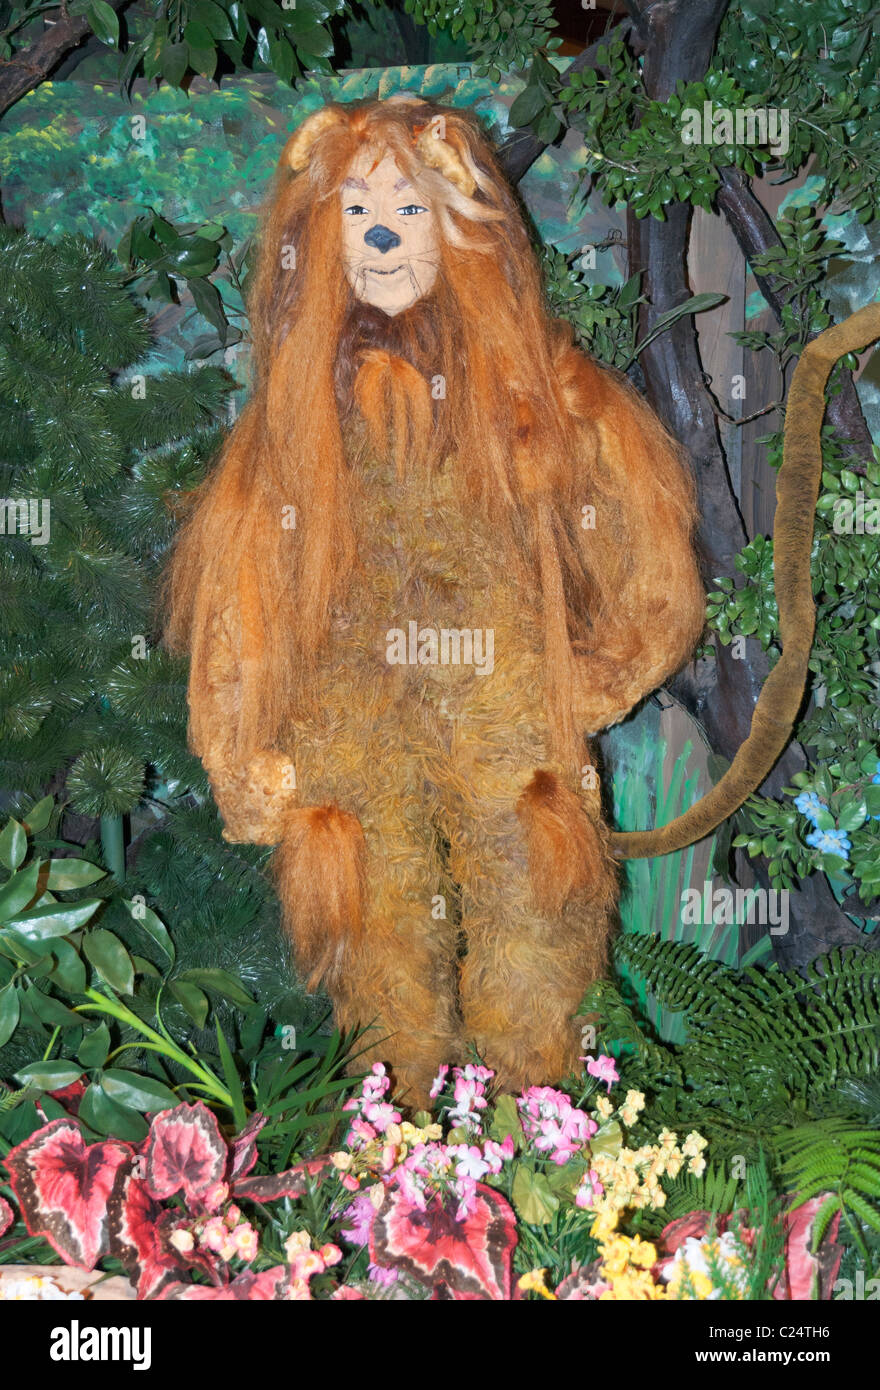 Kansas, Liberal, Land of Oz inspired by 1939 motion picture The Wizard of Oz, Cowardly Lion character - Stock Image